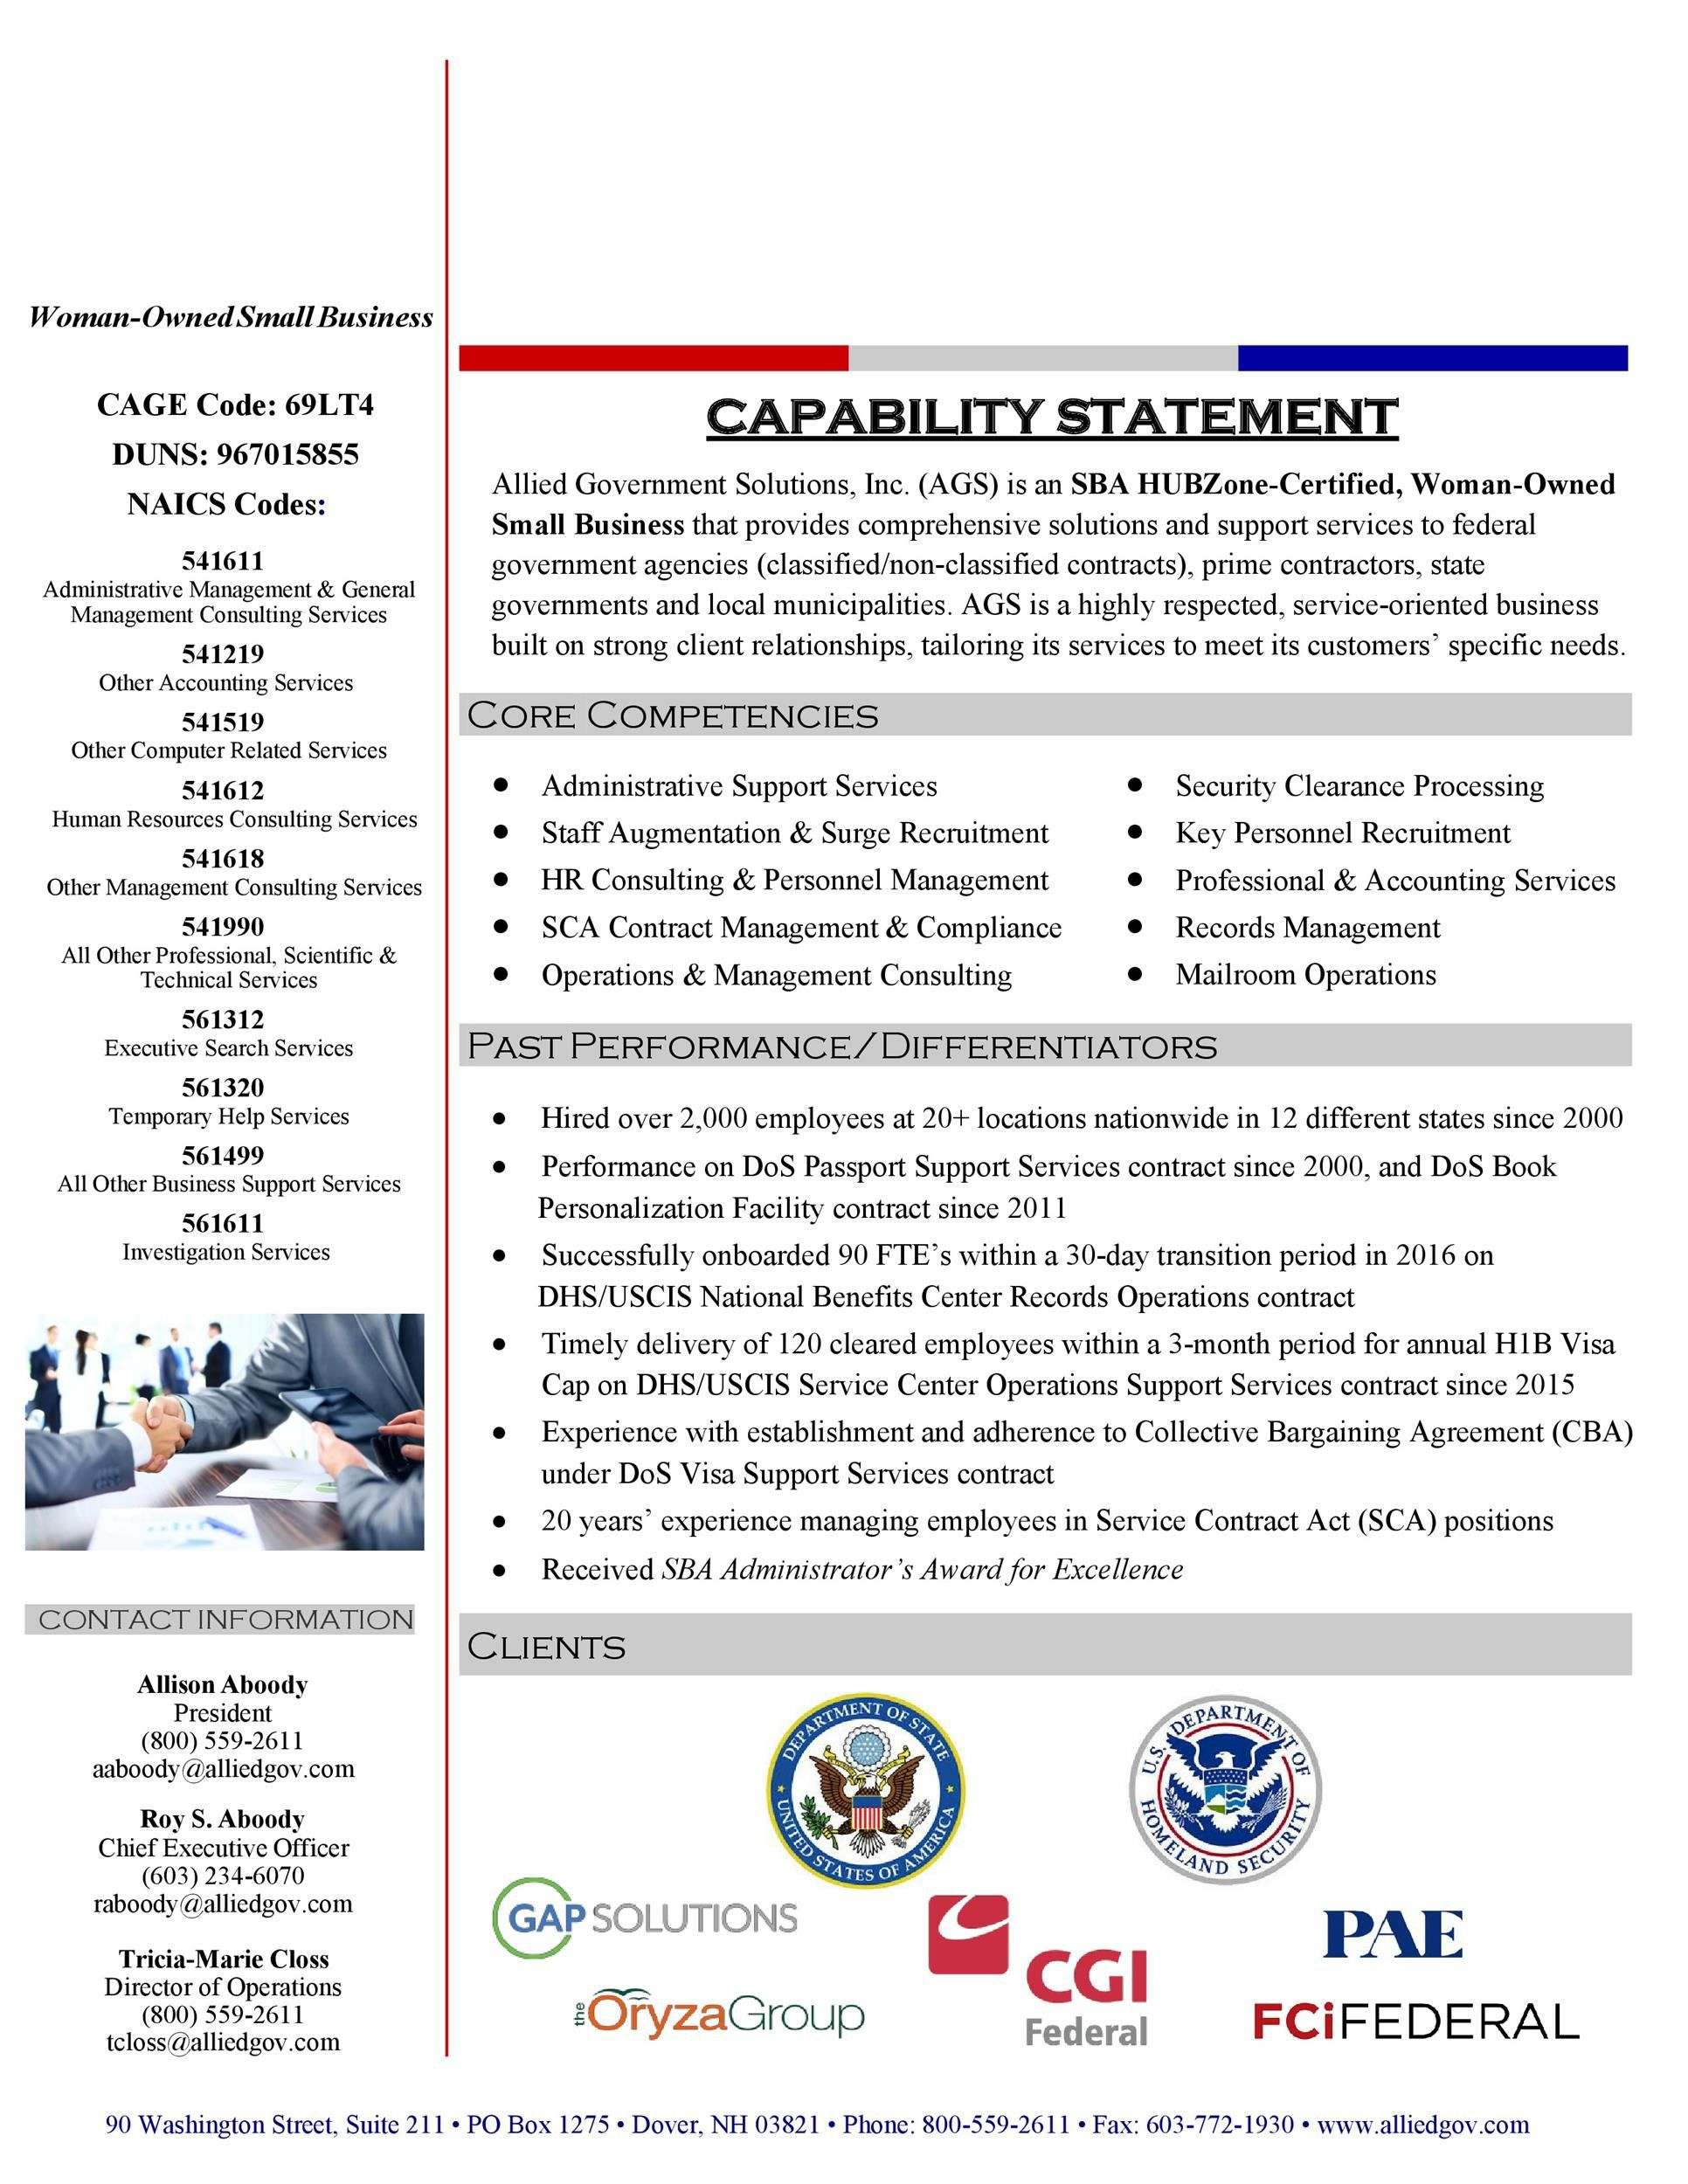 007 Remarkable Capability Statement Template Free Inspiration  Word Editable DesignFull